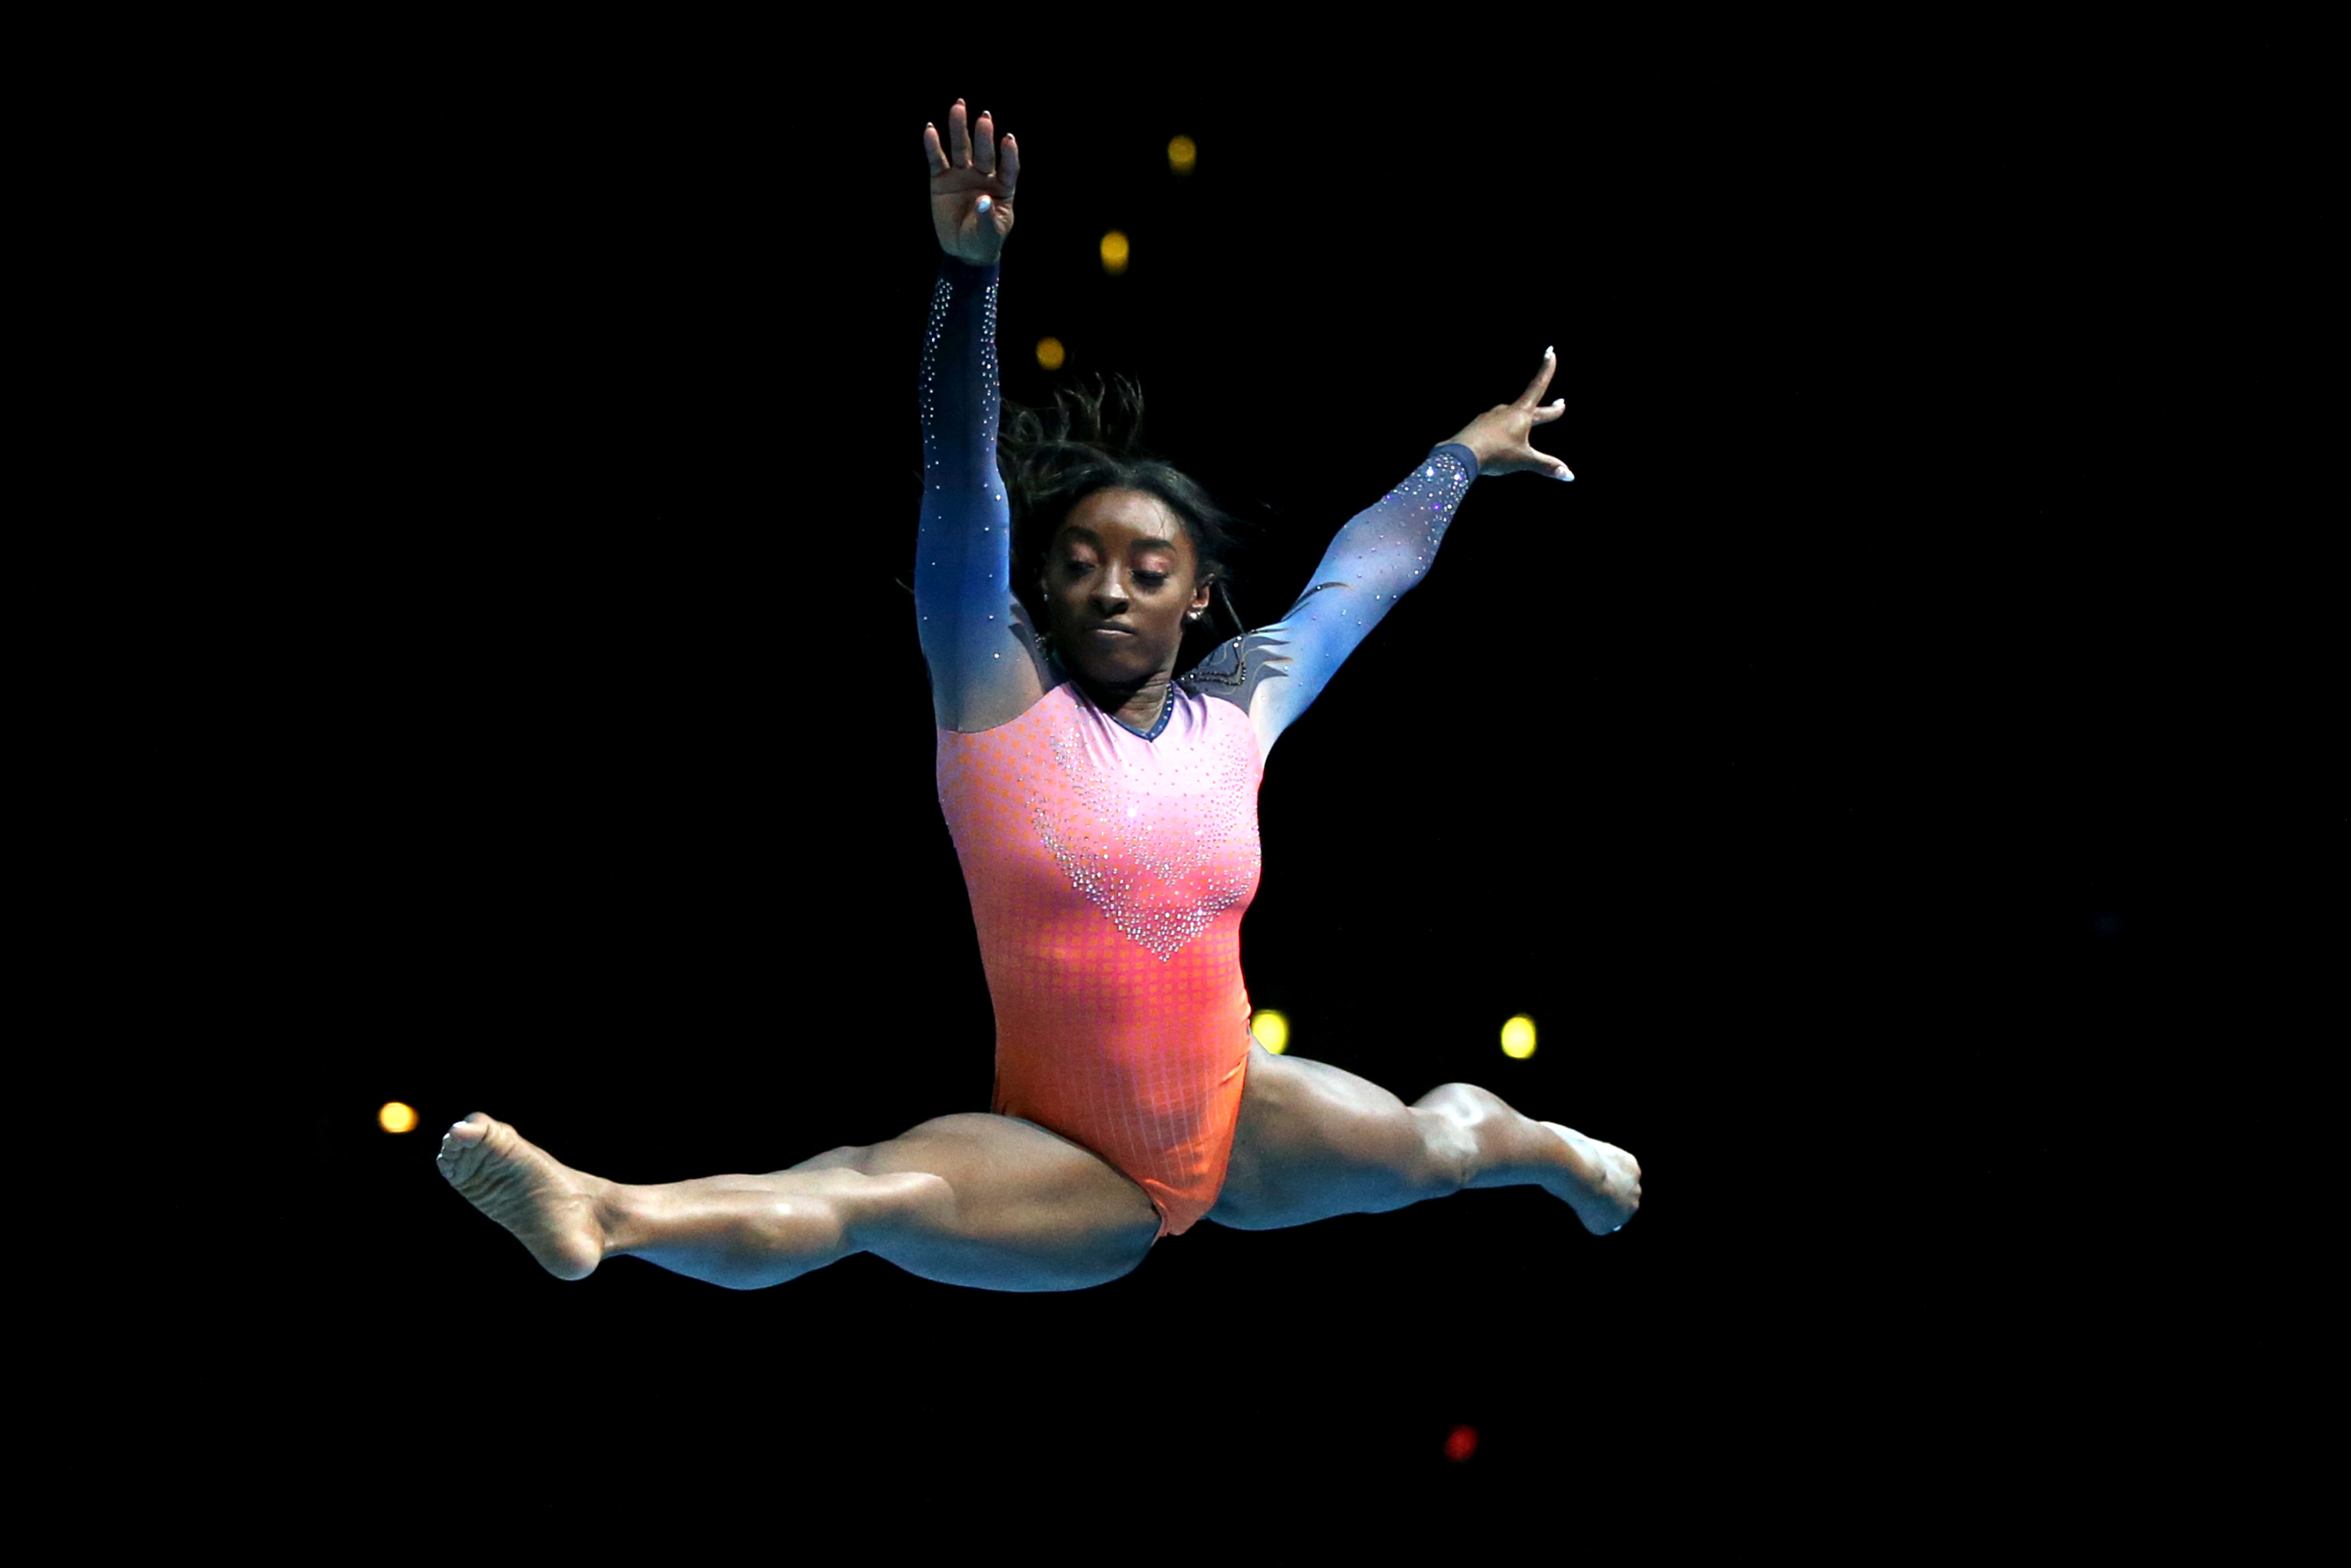 Simone Biles says she's 'still scared to do gymnastics' after struggling with 'twisties' at Olympics